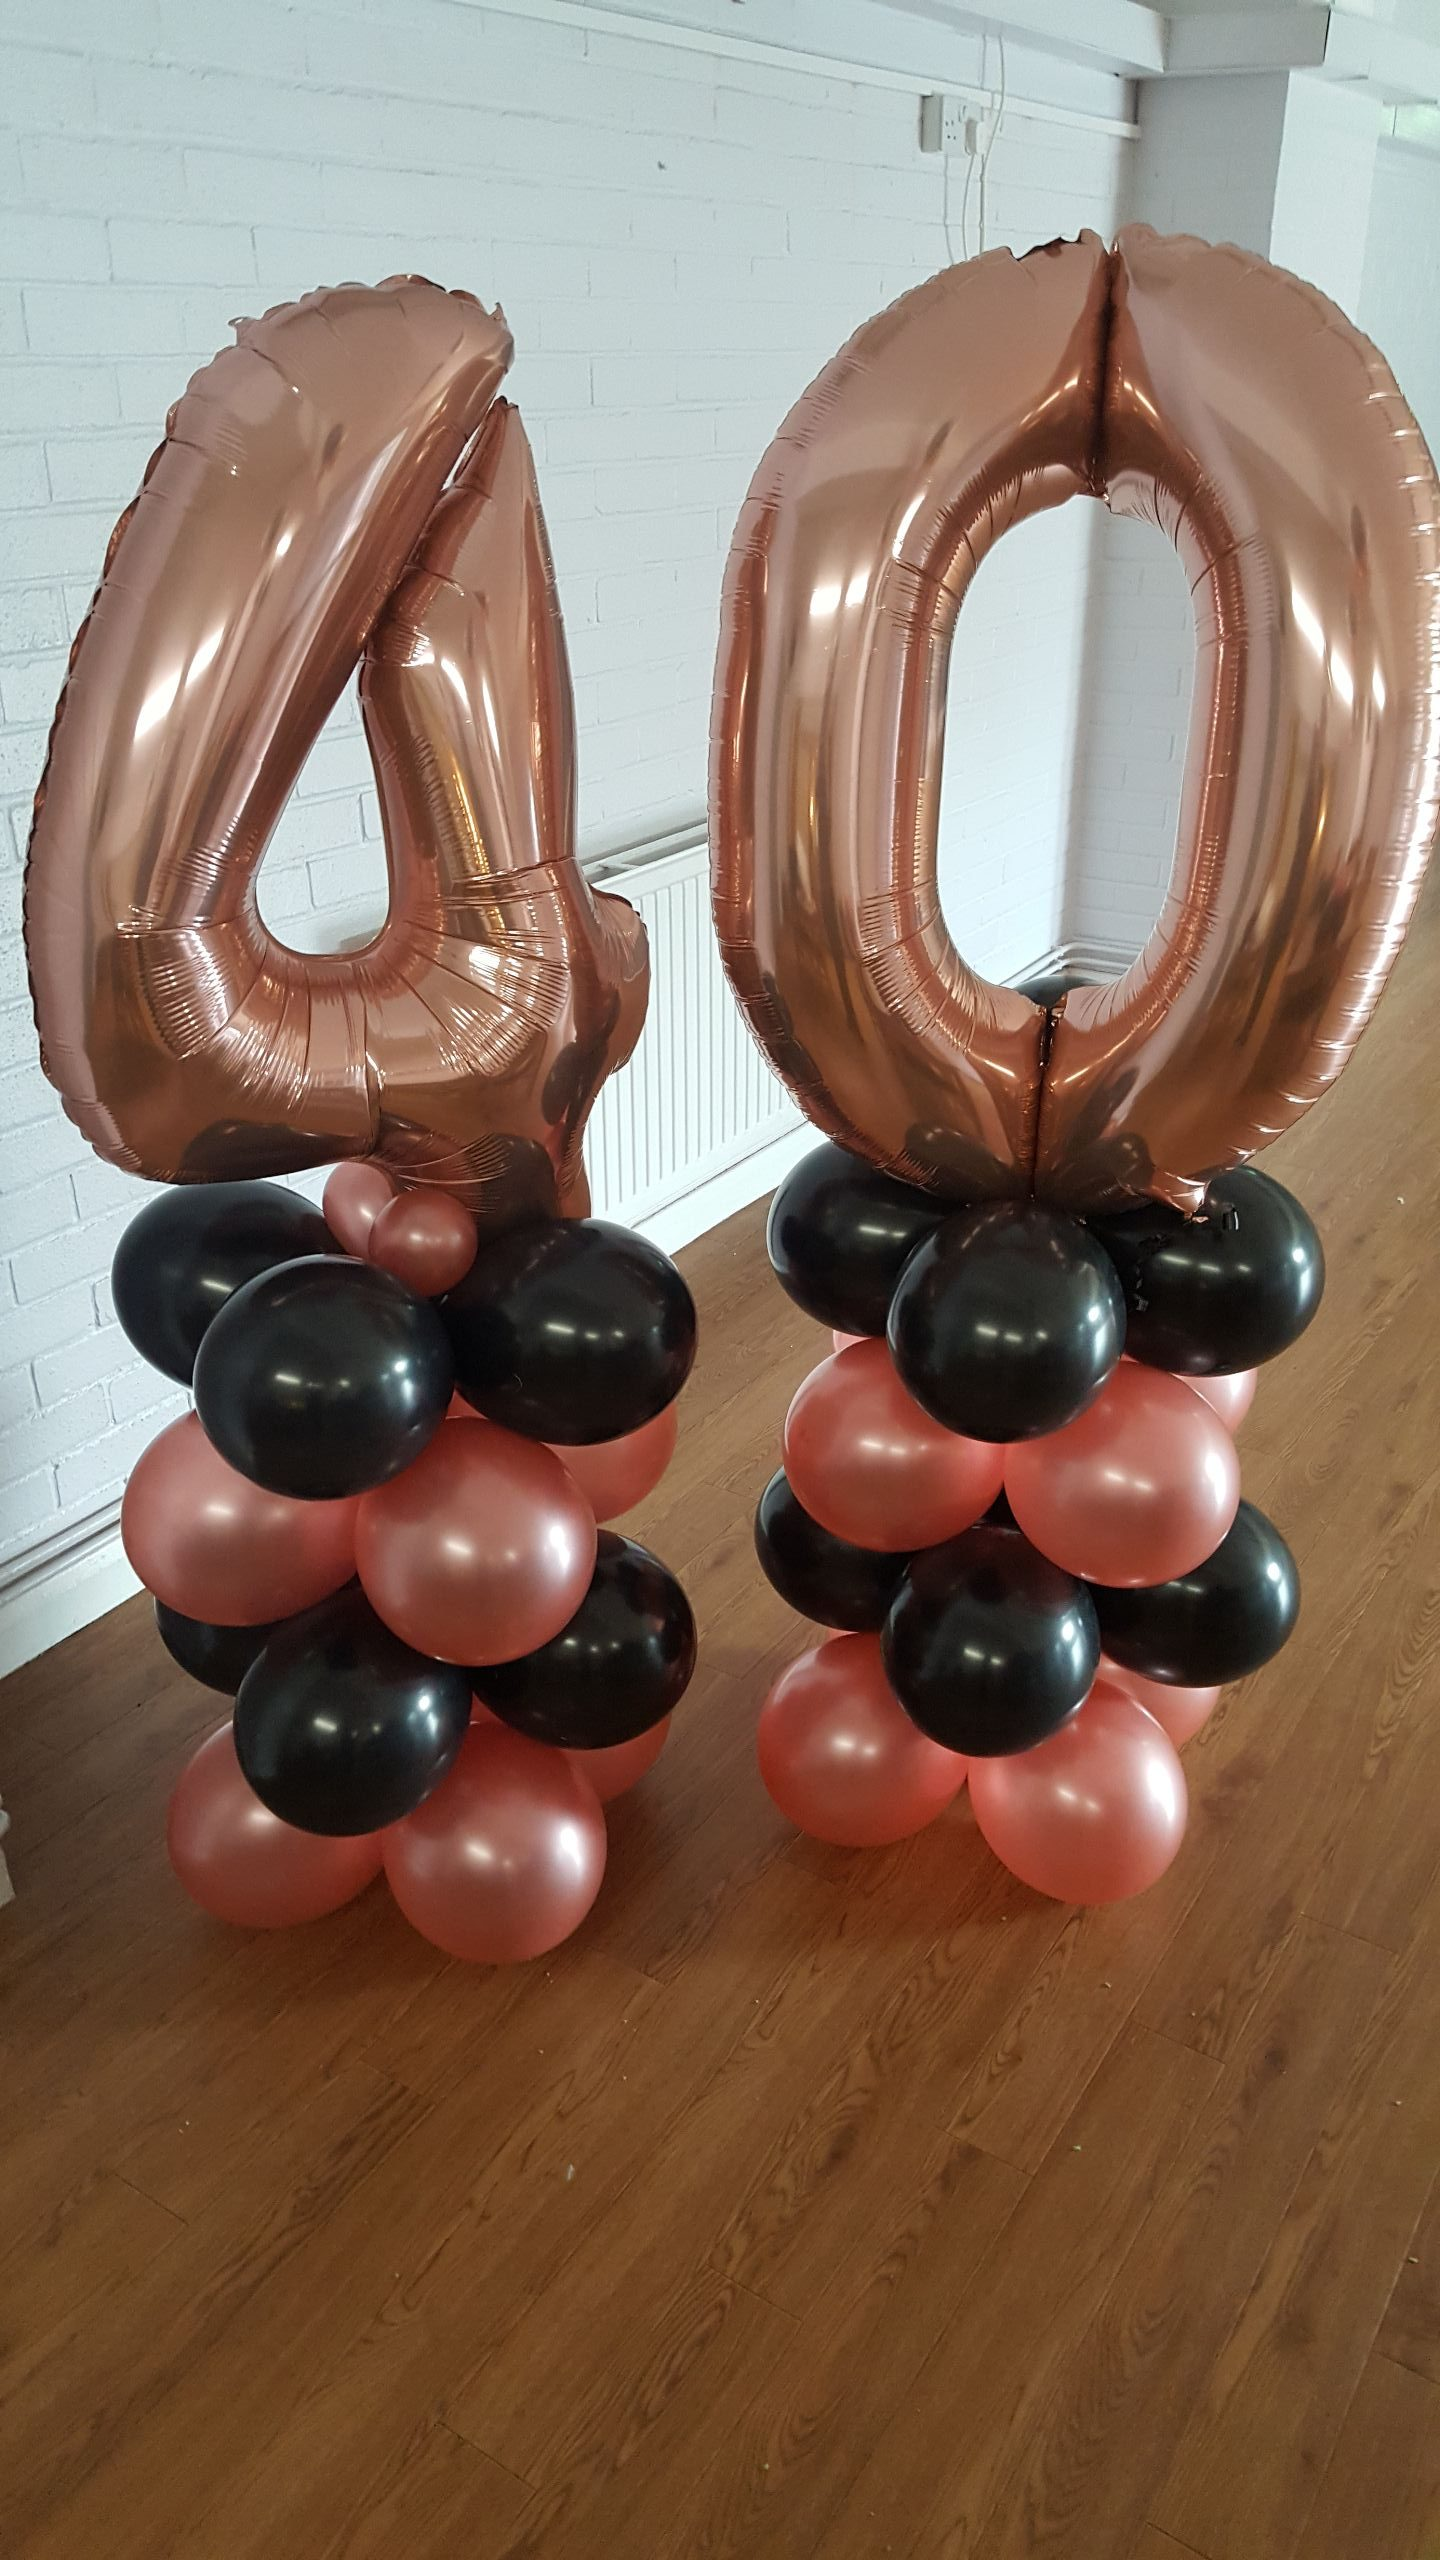 40 Balloon Display